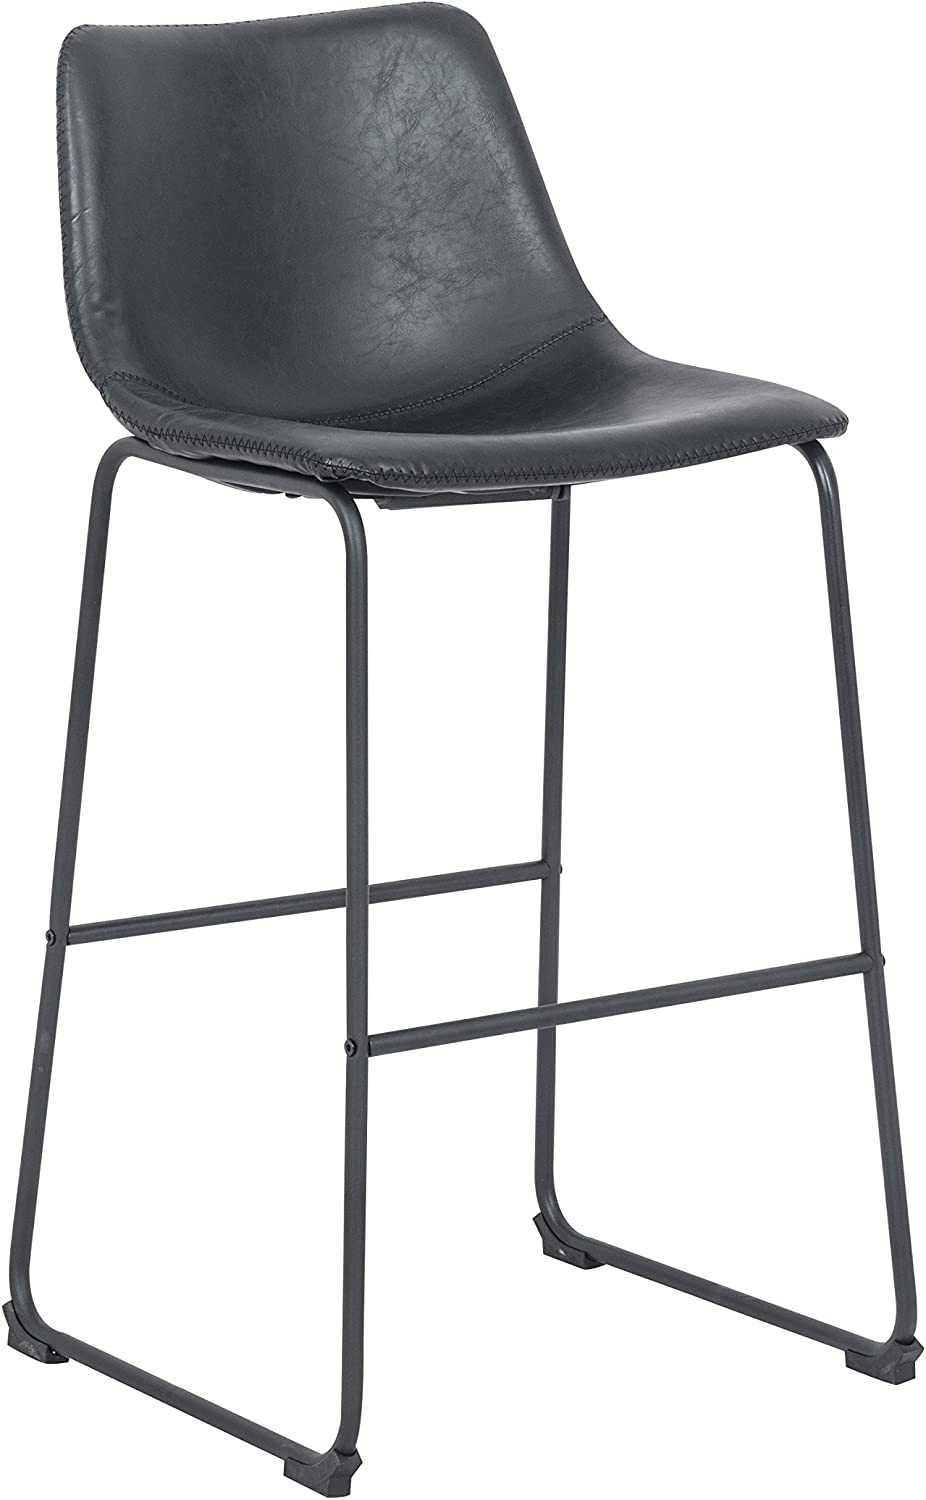 silver Import PDI-HY-7163A-4-BL Lotusville Vintage PU Leather Dining Chair, Black